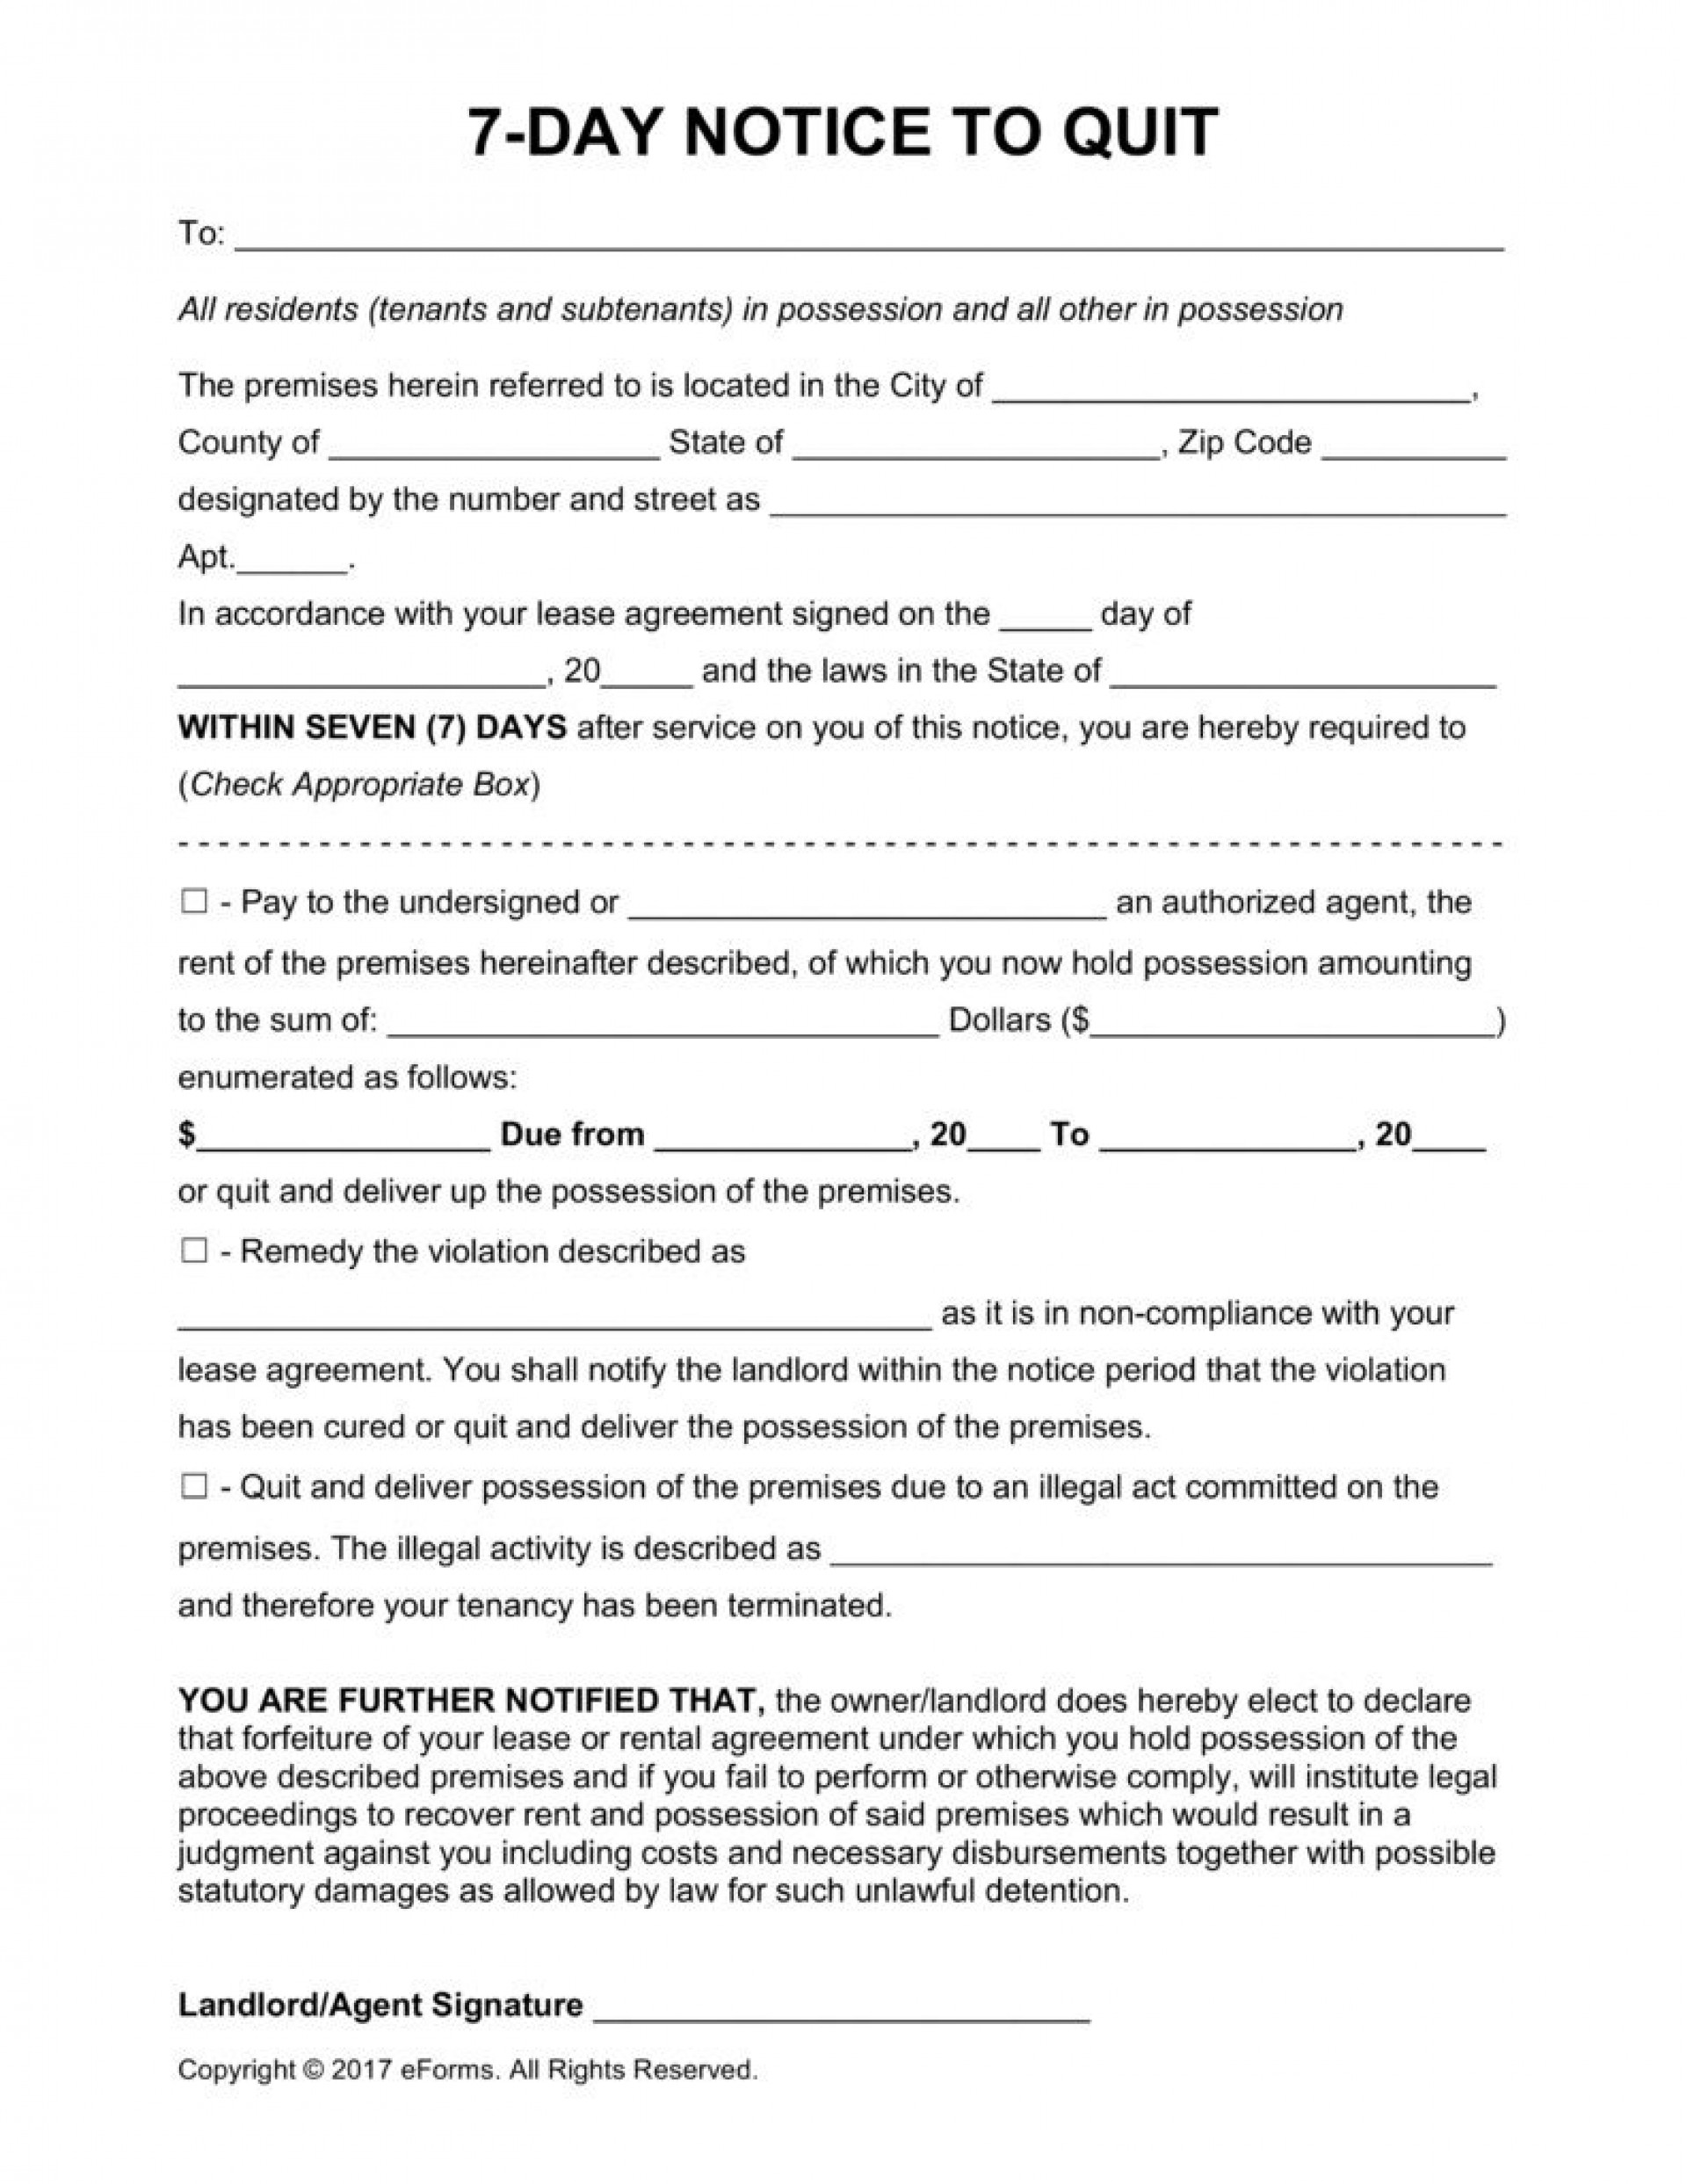 002 Remarkable Eviction Notice Template Free Highest Quality  30 Day Uk Word Document1920